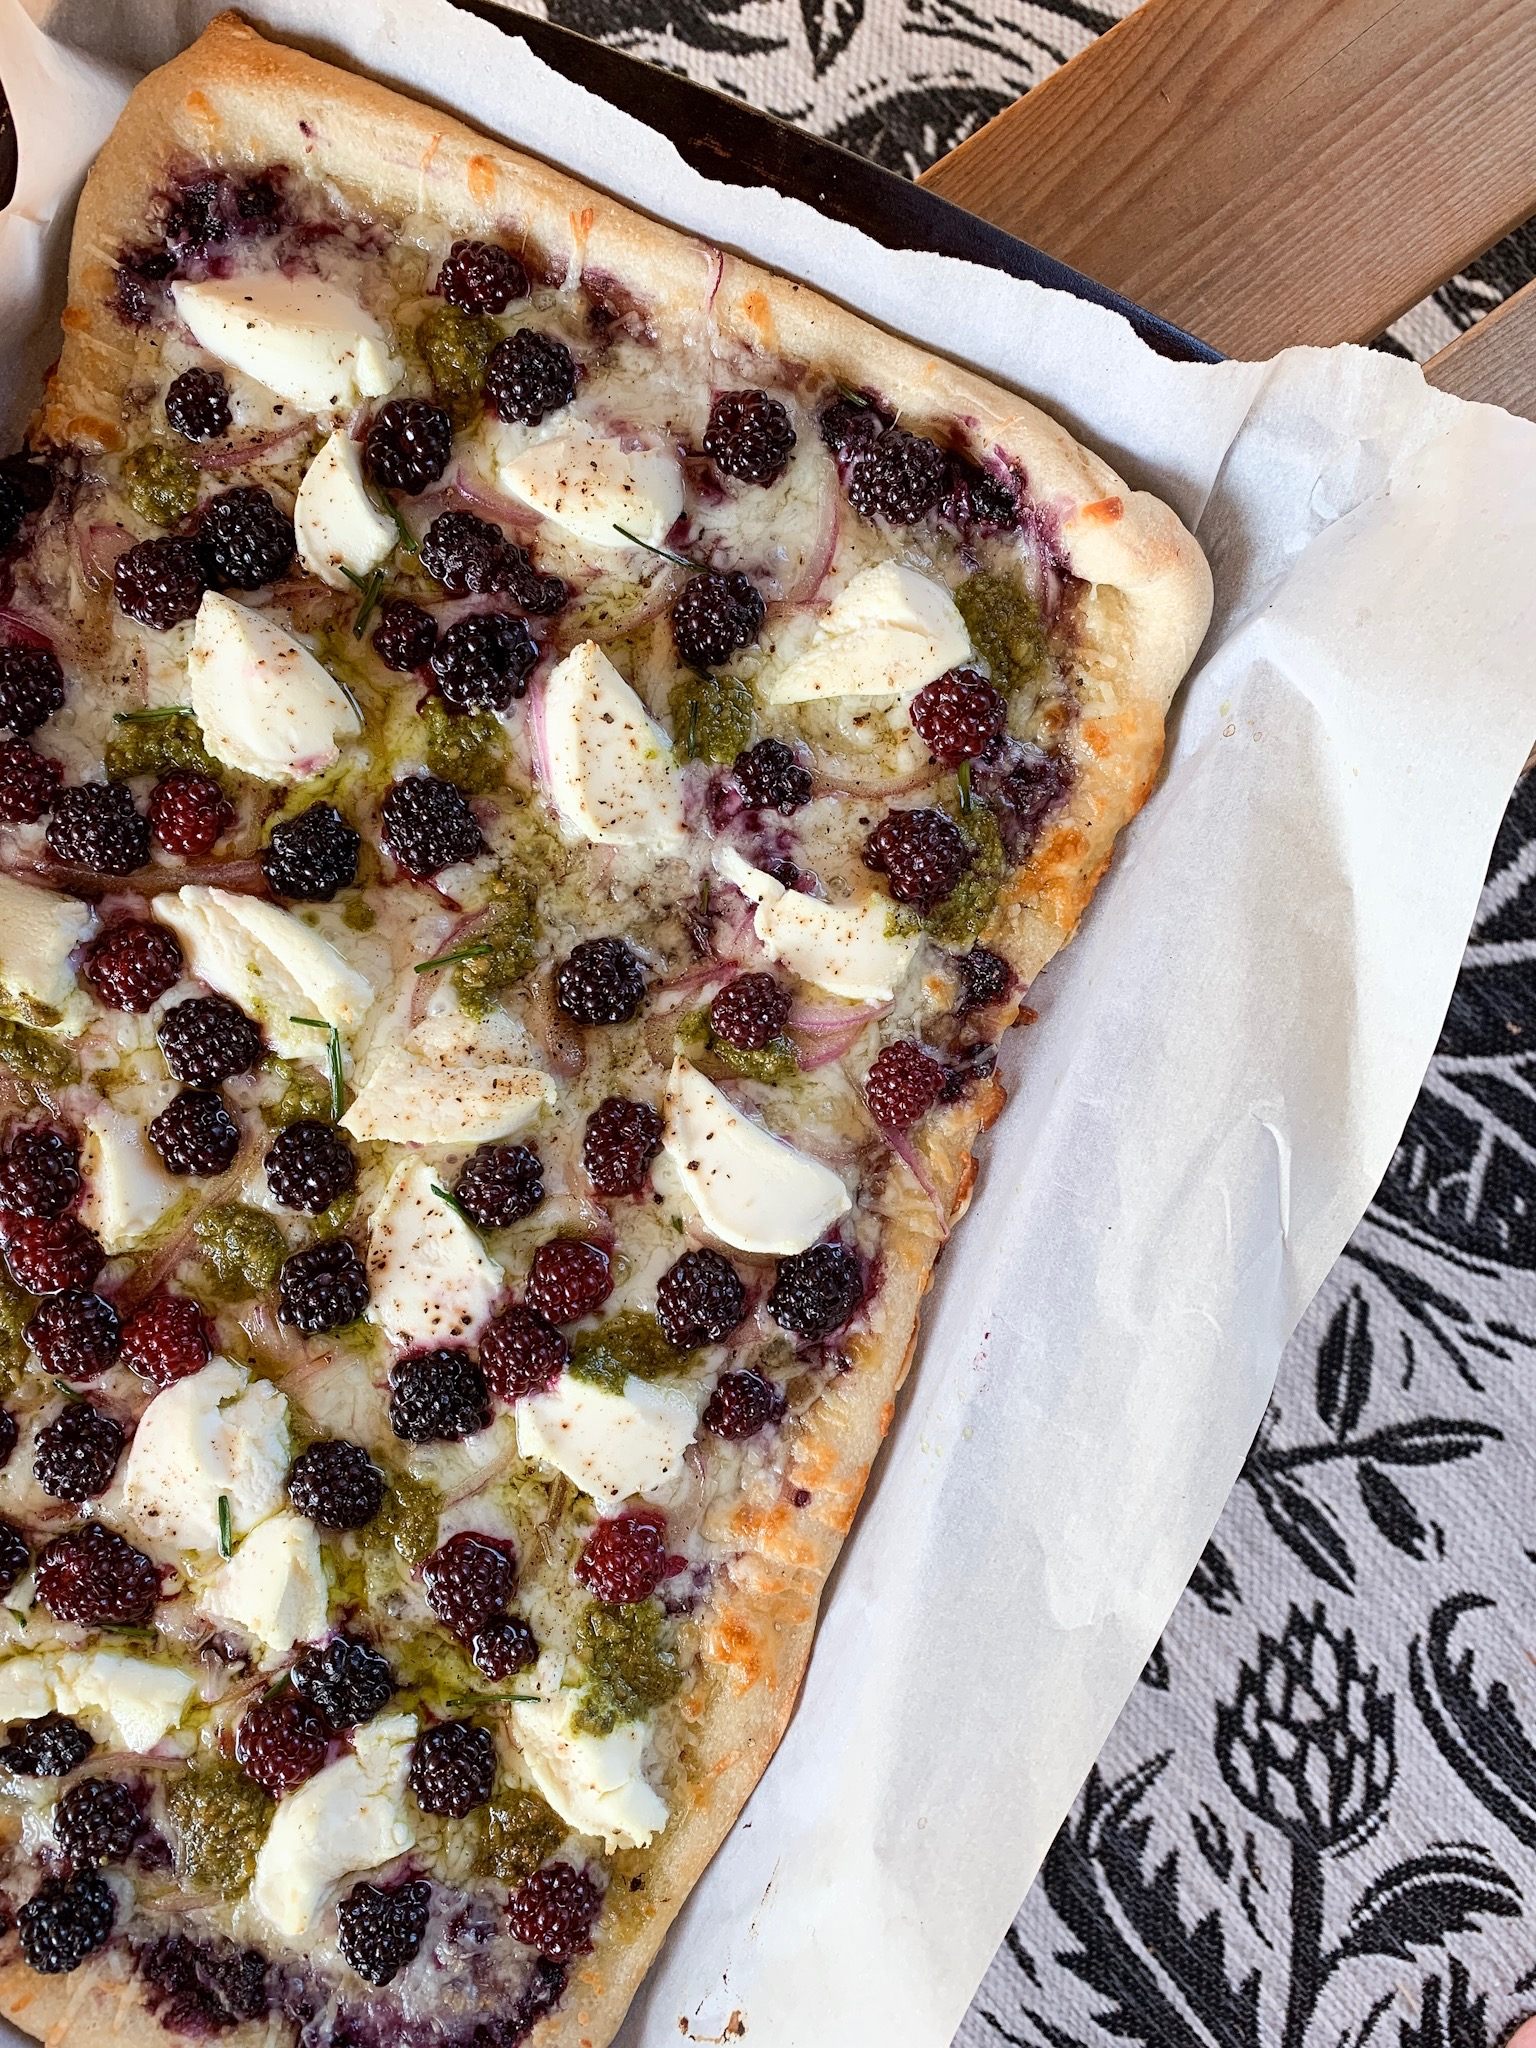 rectangle pizza with blackberries and cheese